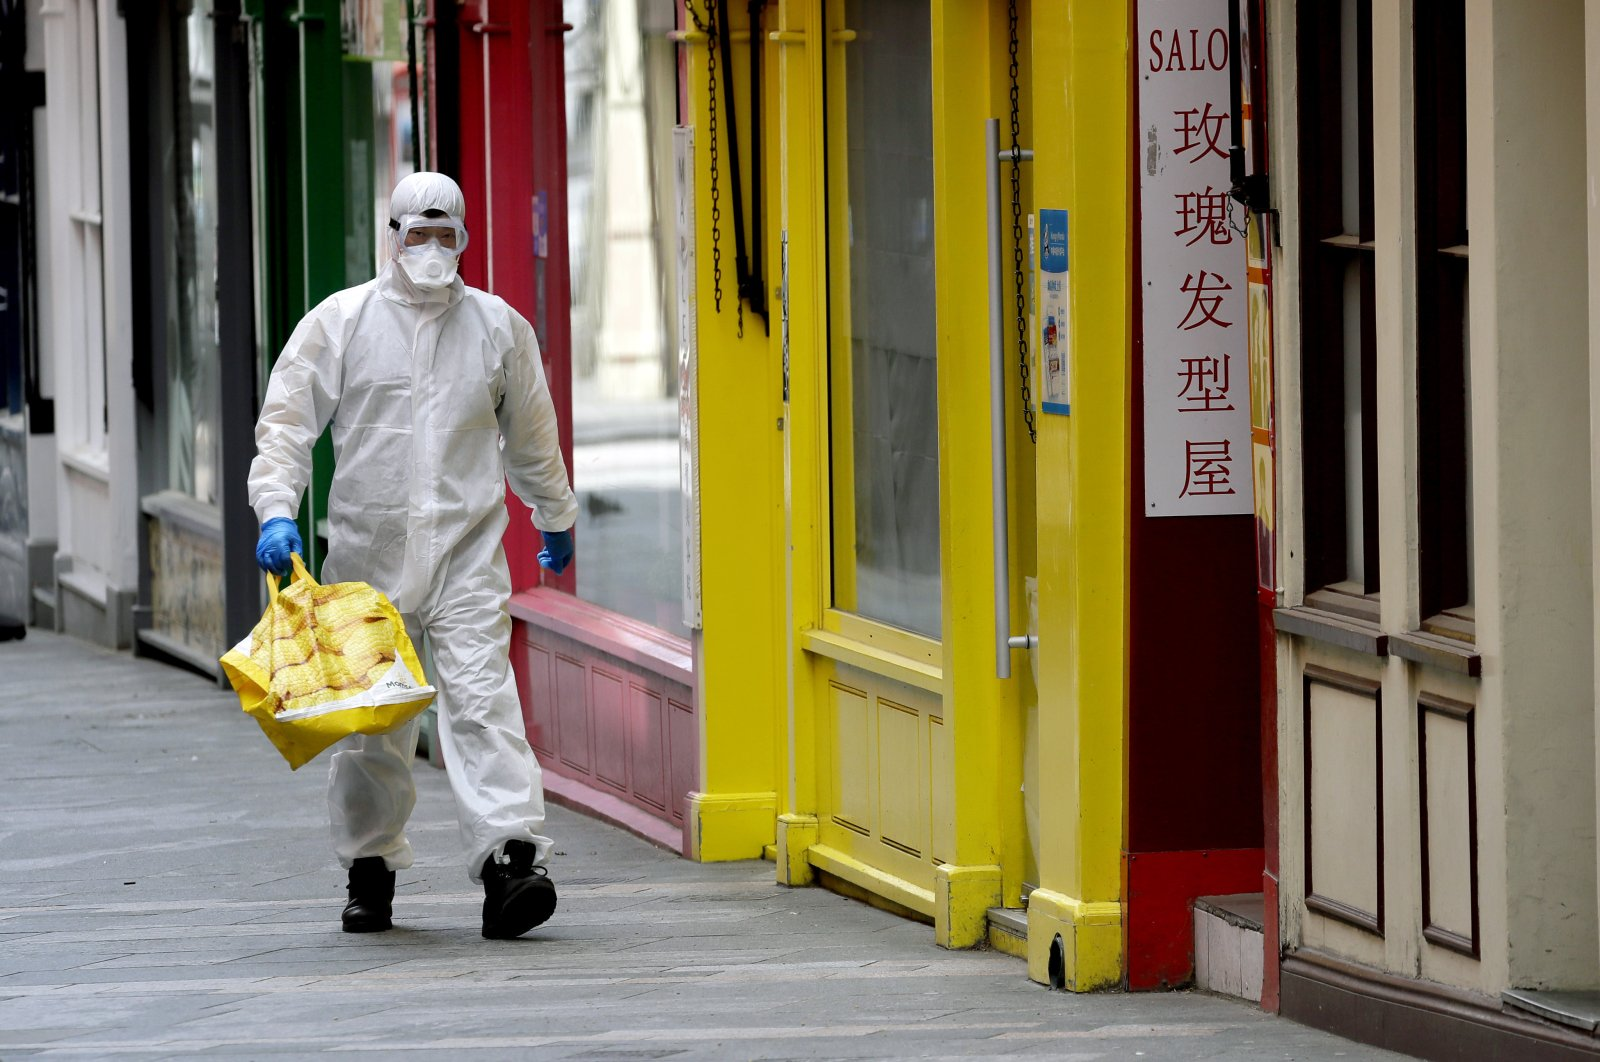 A man wears full protective equipment to protect against the coronavirus as he shops in London, Monday, May 4, 2020, as the UK enters a seventh week of lockdown to help stop the spread of coronavirus. (AP Photo)